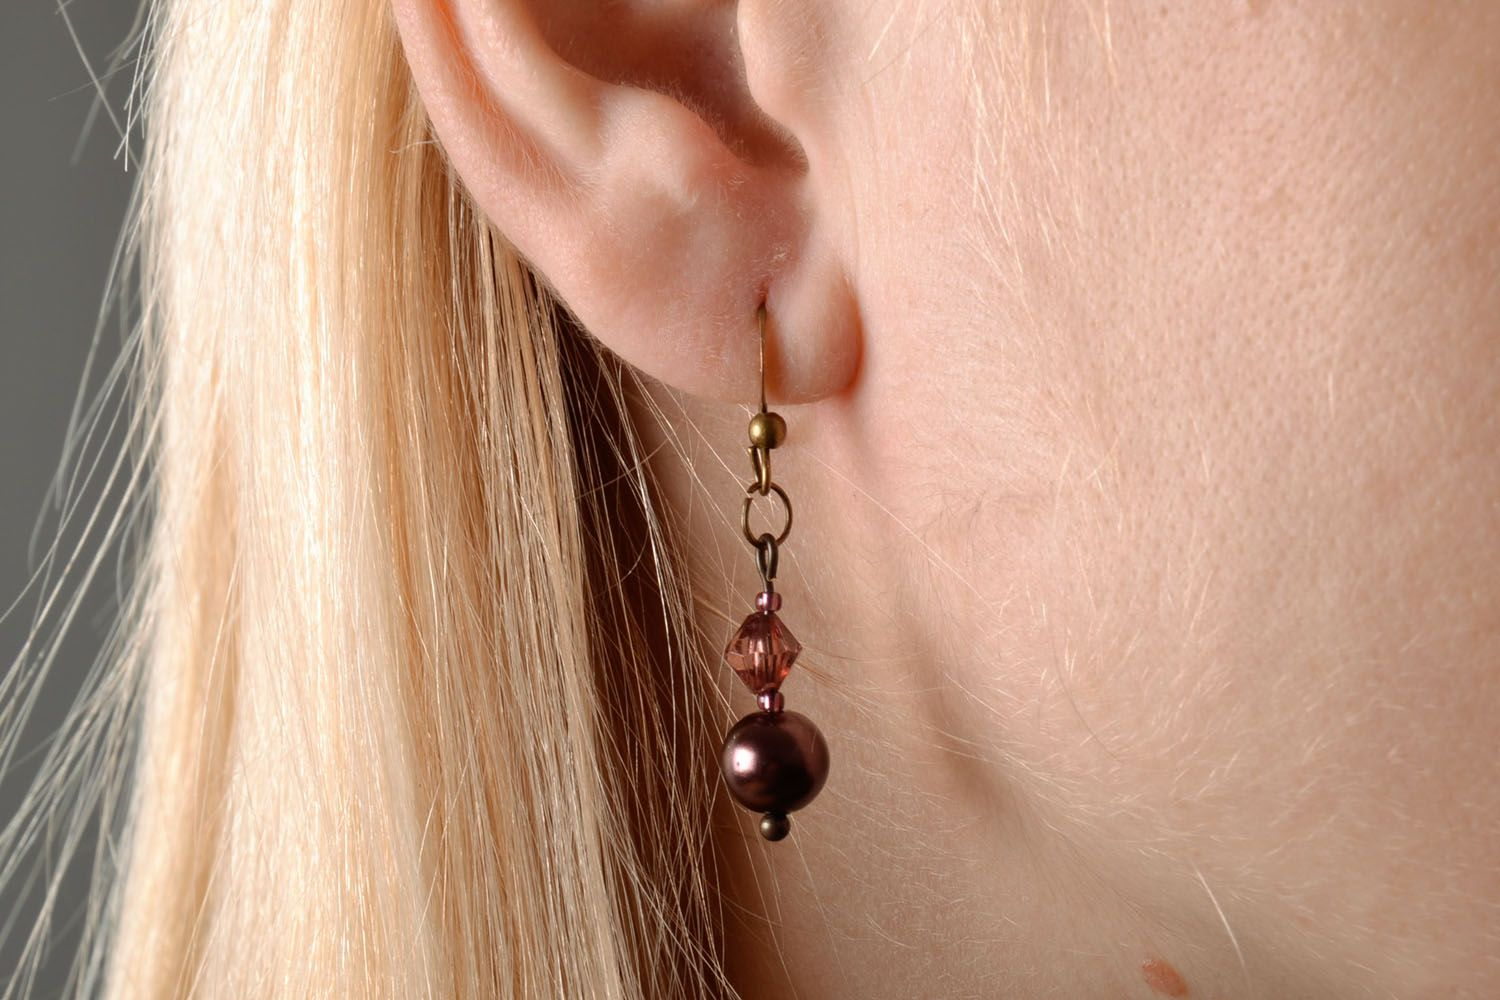 Earrings with beads photo 5